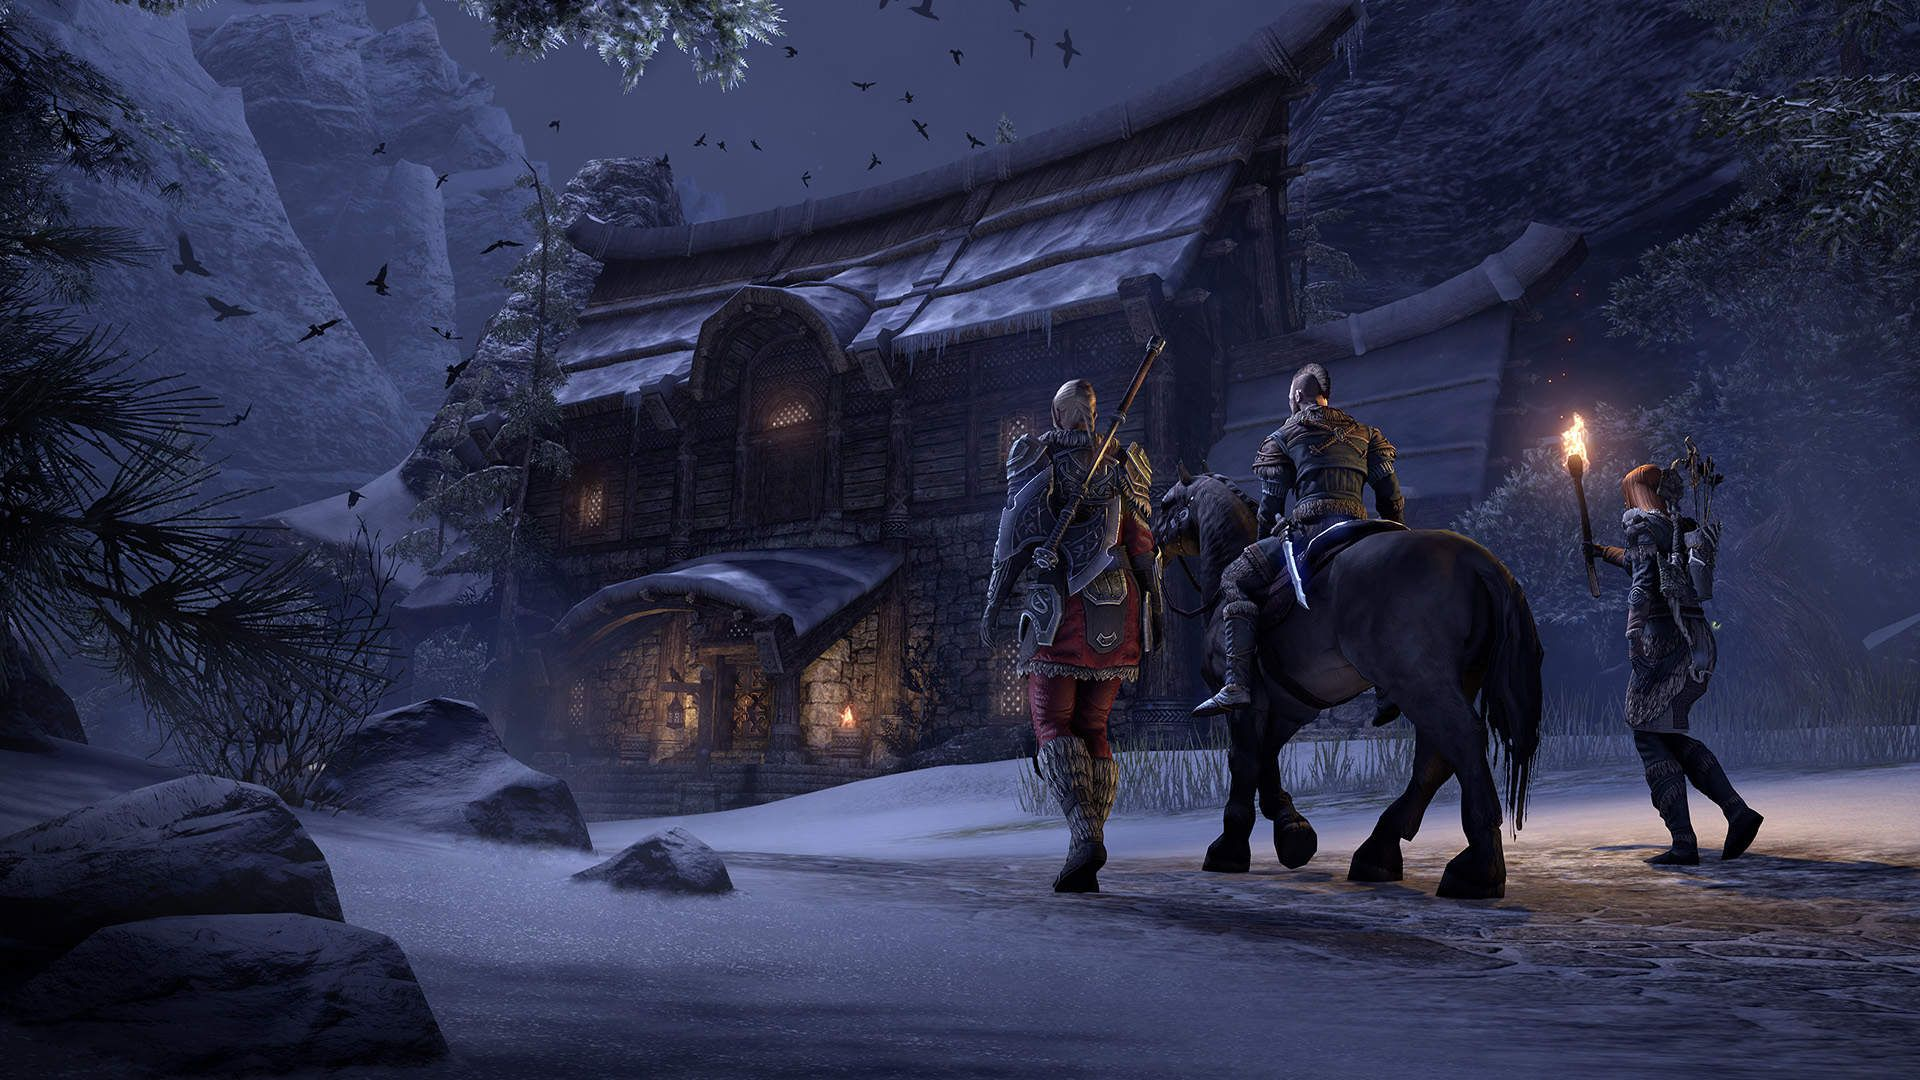 the-elder-scrolls-online-ventures-into-skyrim-with-greymoor-expansion-this-may.jpg